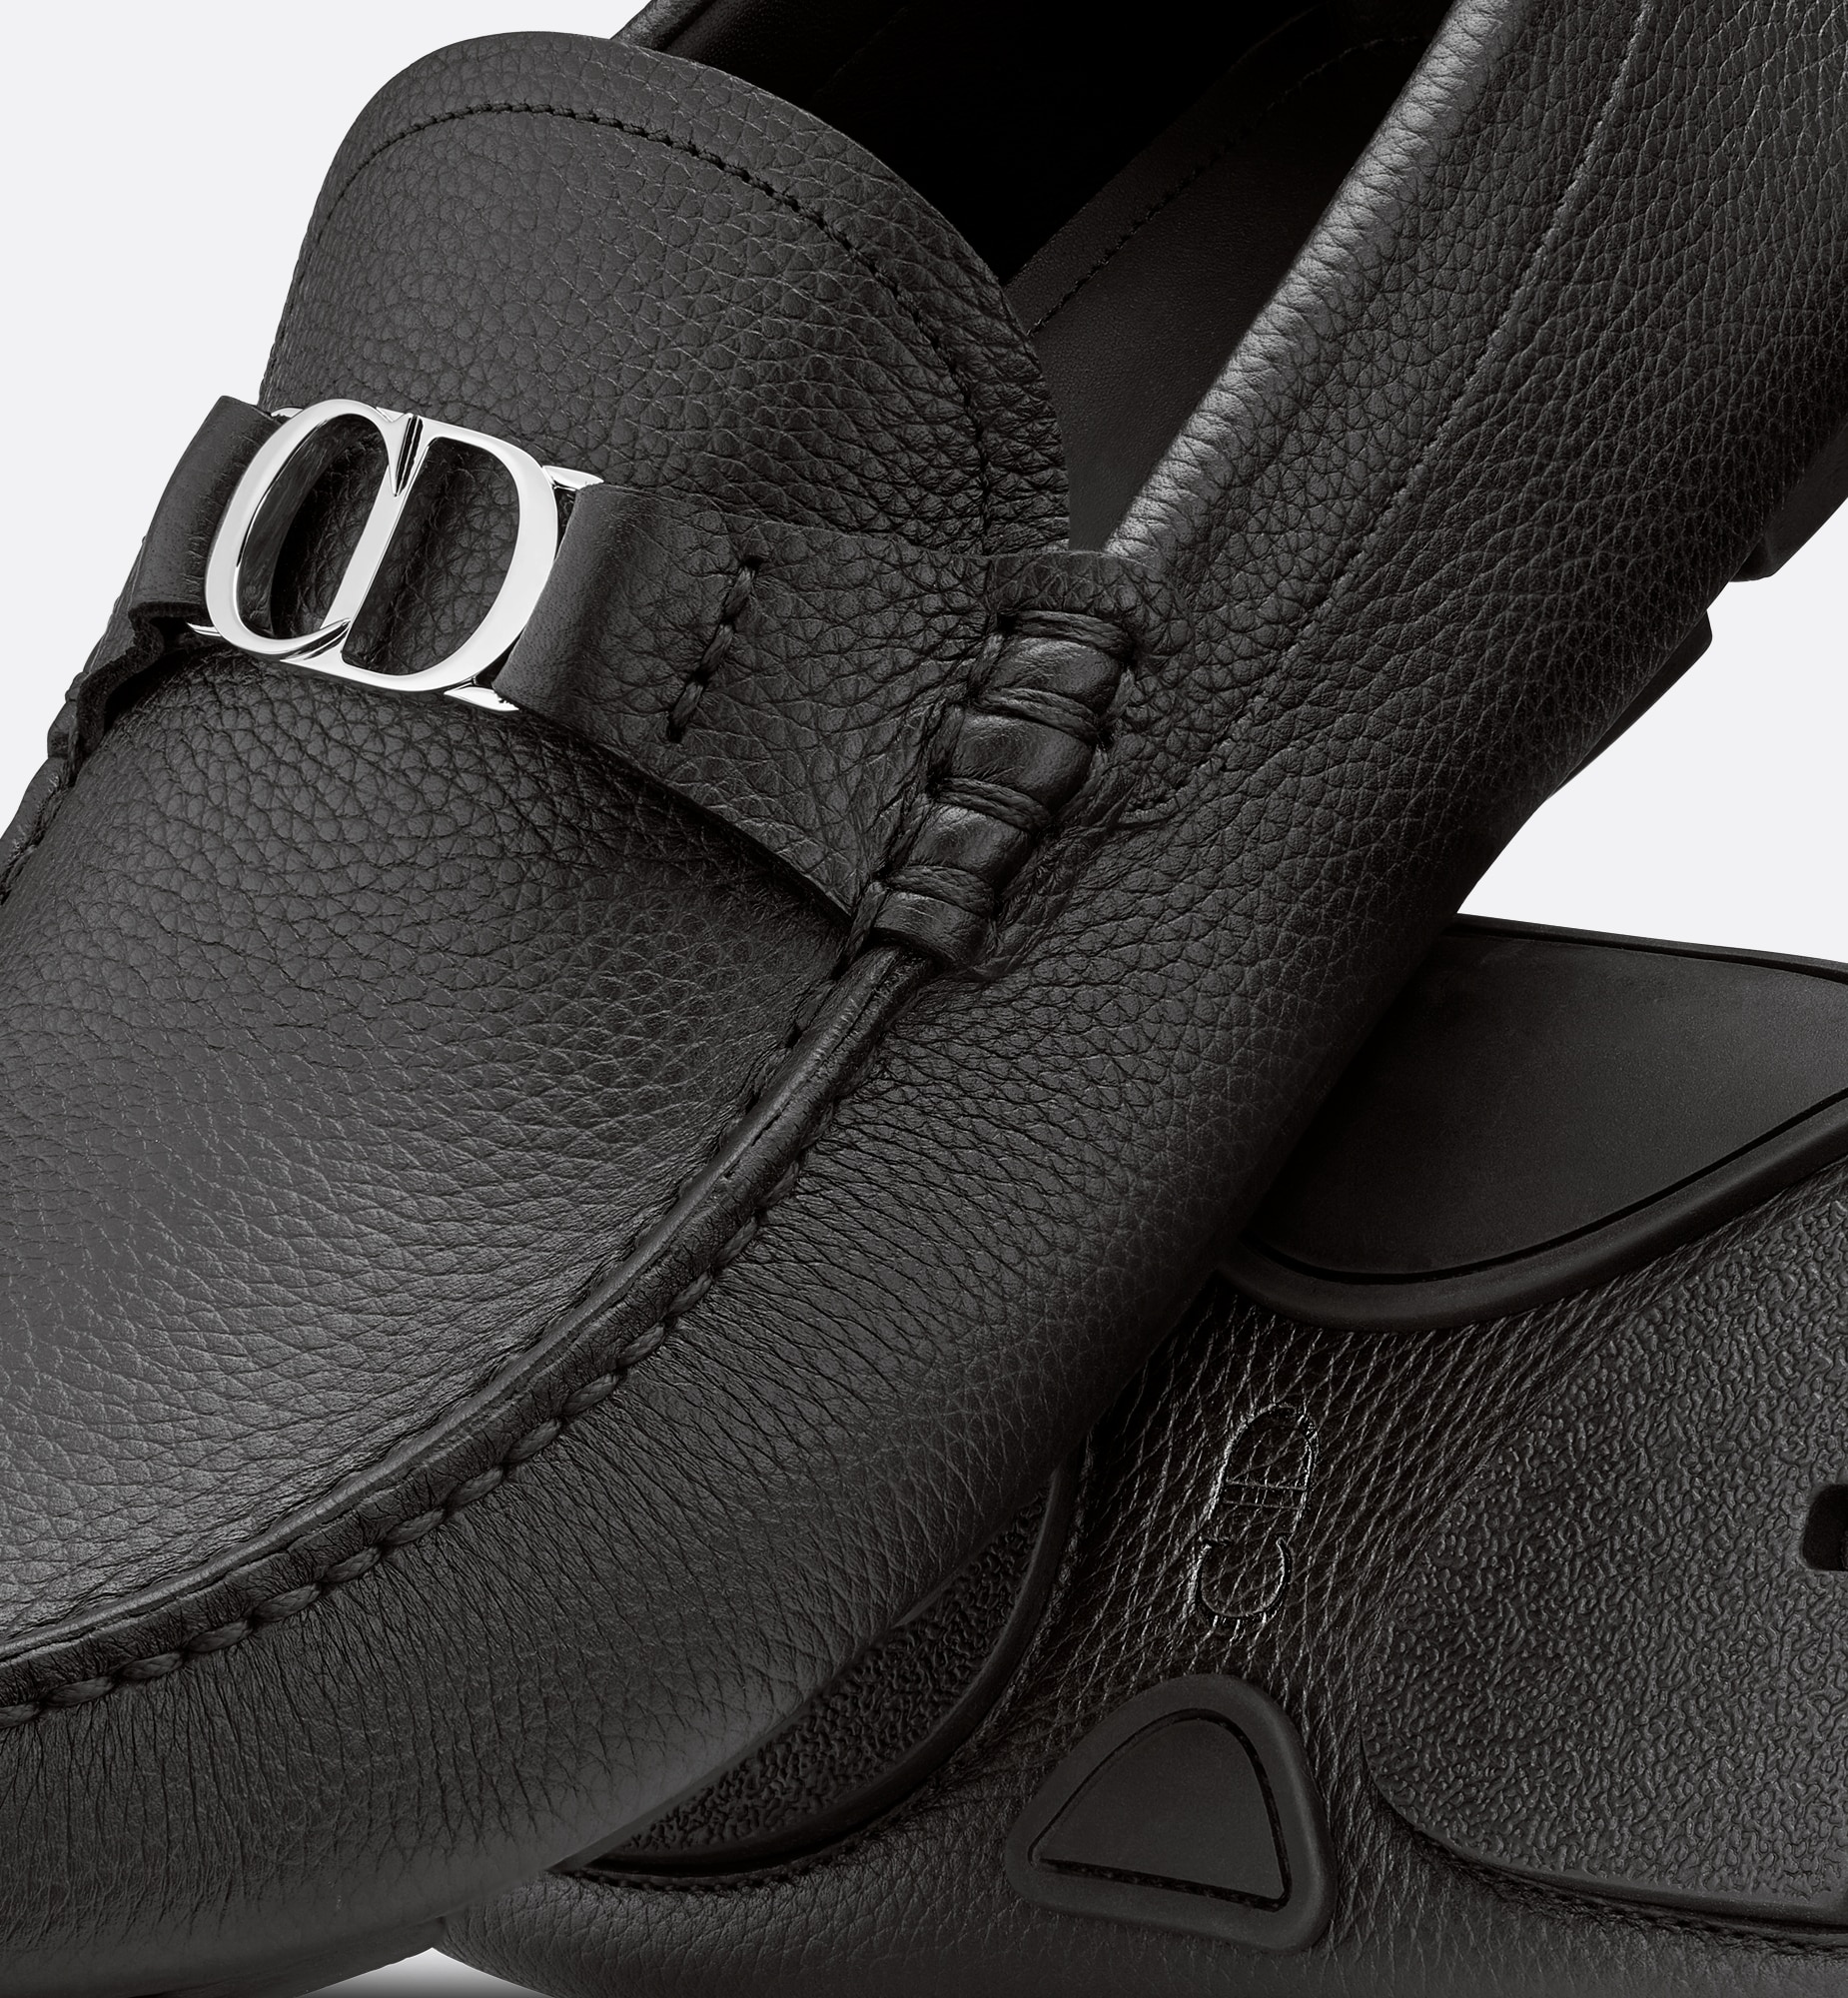 Loafer Detailed view Open gallery